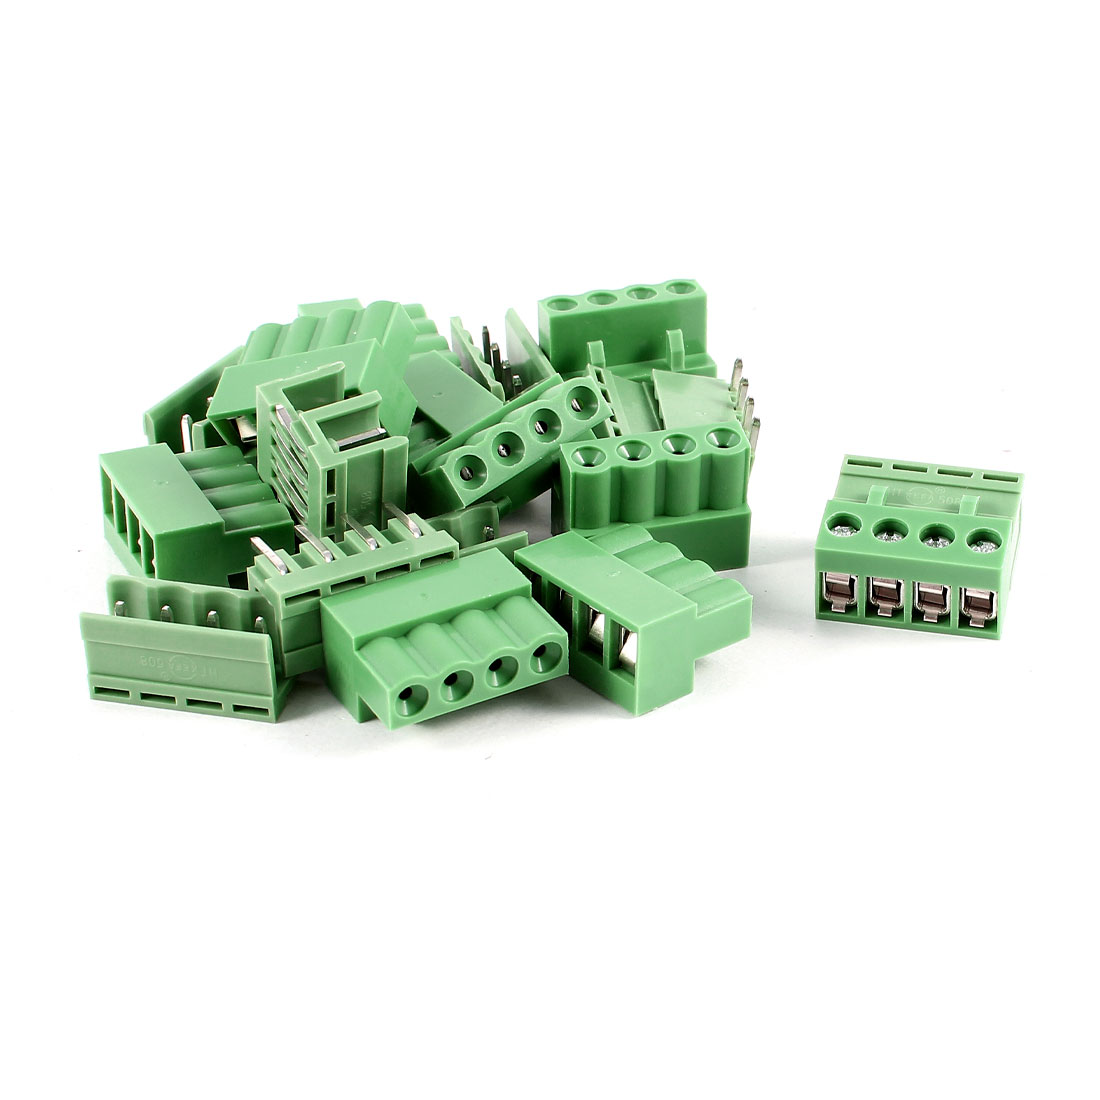 10 Pcs 4Pin 5.08mm Spacing PCB Screw Terminal Block Connector 300V 10A AWG14-26